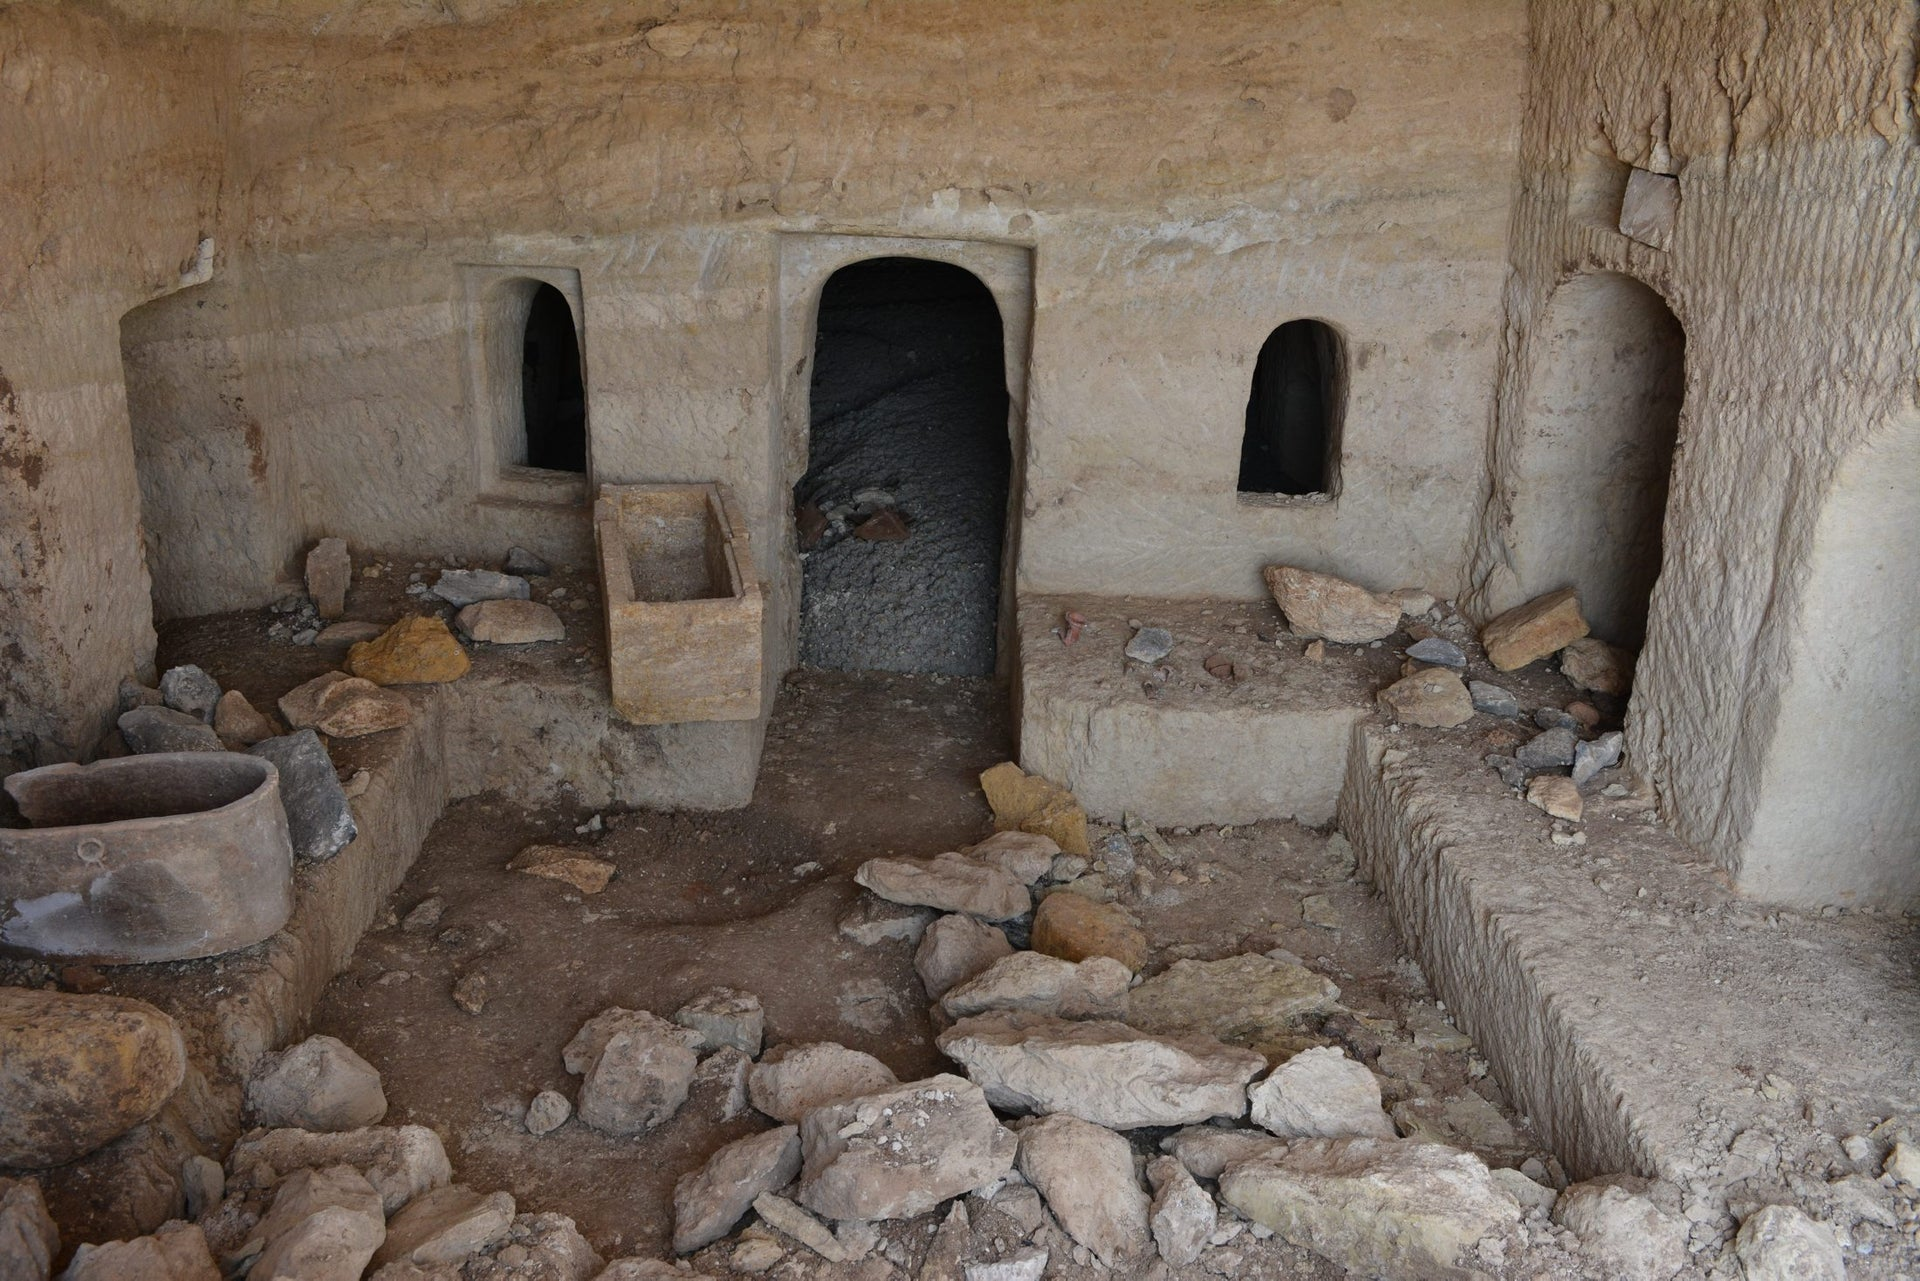 Inside the 2,000-year-old Jewish burial cave found in Tiberias: Room for a family. On the left is an ossuary.